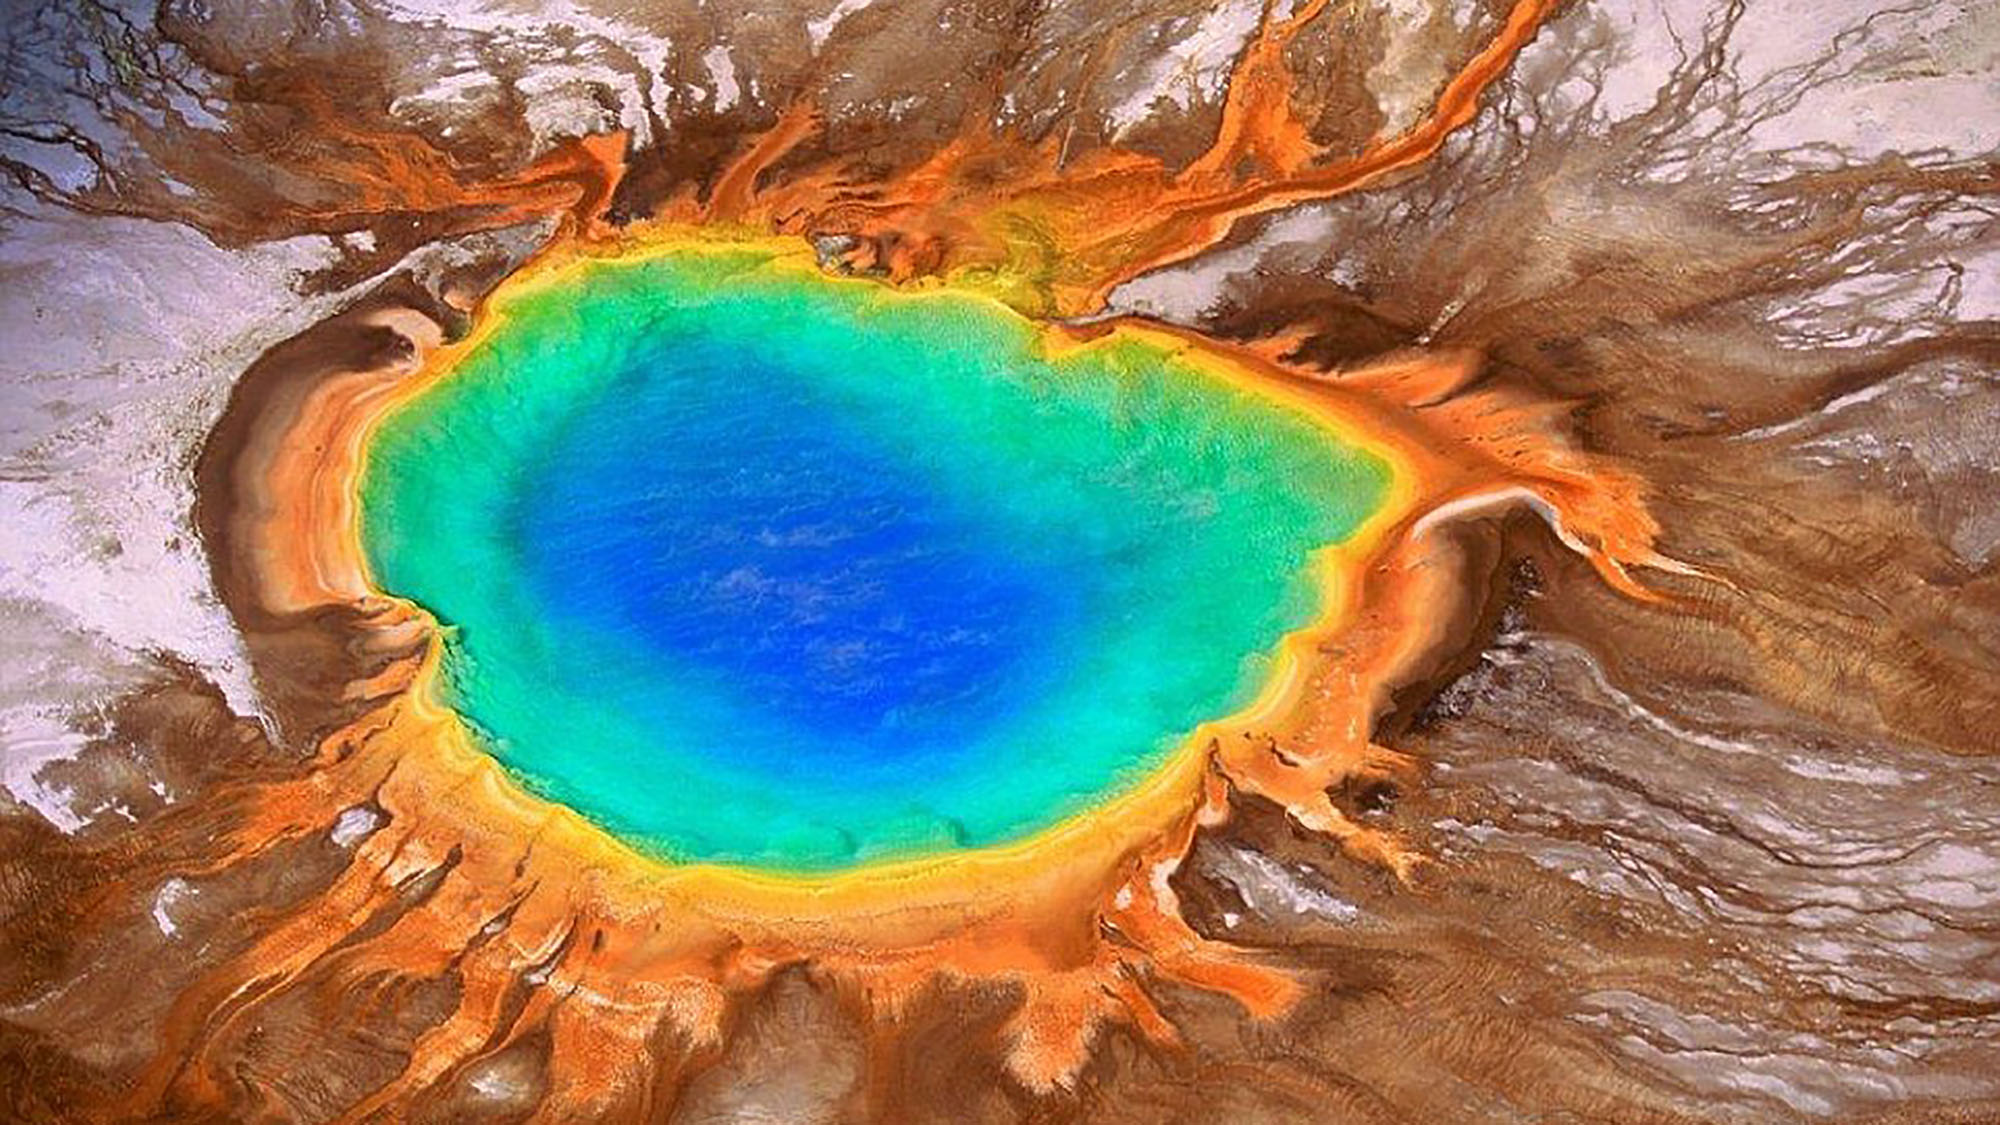 The most bizarre natural attractions on earth